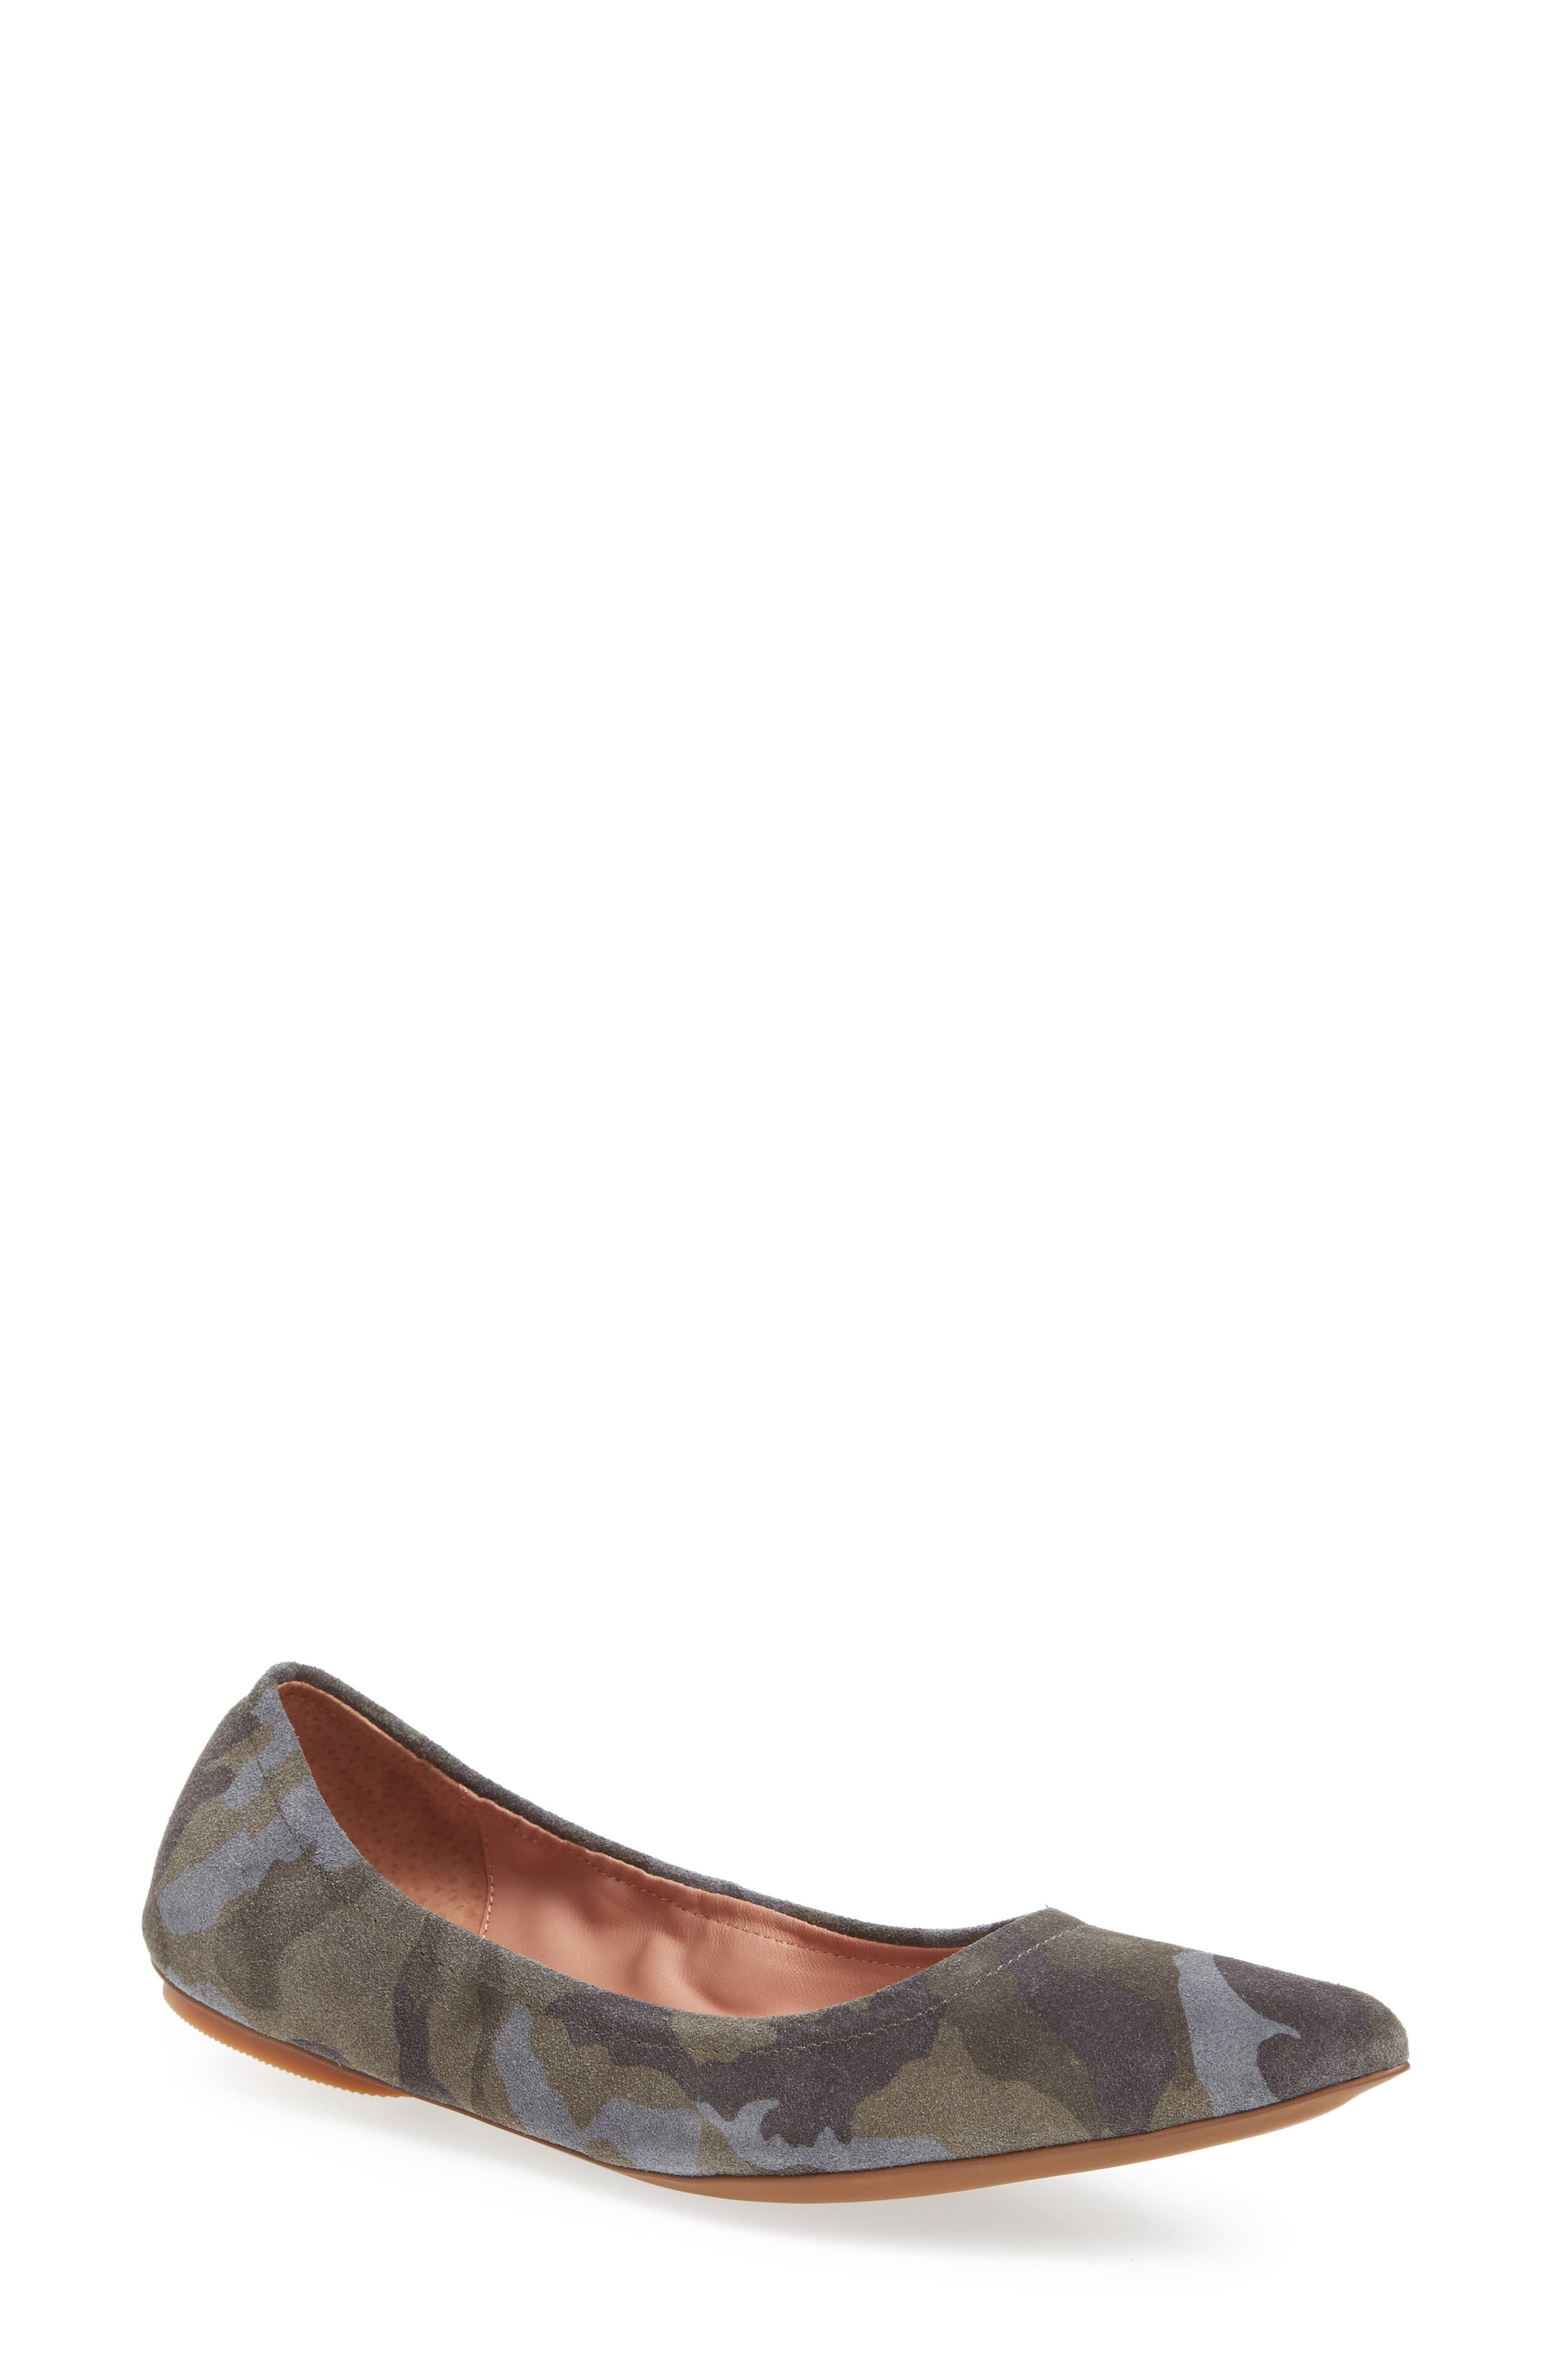 Nico Pointy Toe Flat,                             Main thumbnail 1, color,                             Camouflage Suede